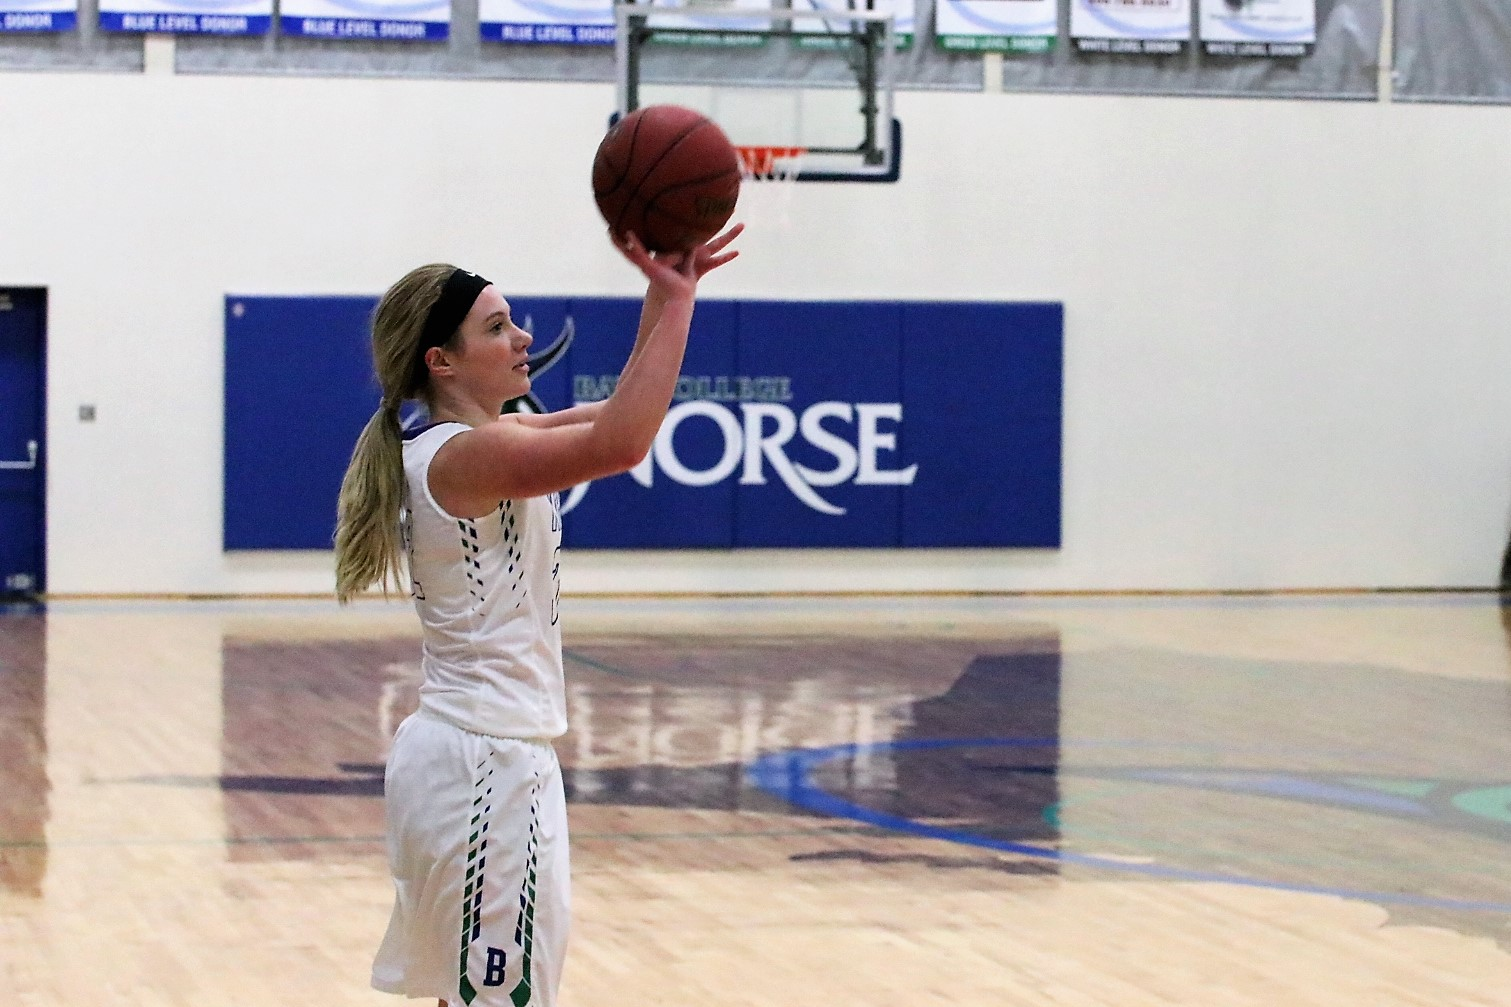 Norse Win in Dramatic Fashion